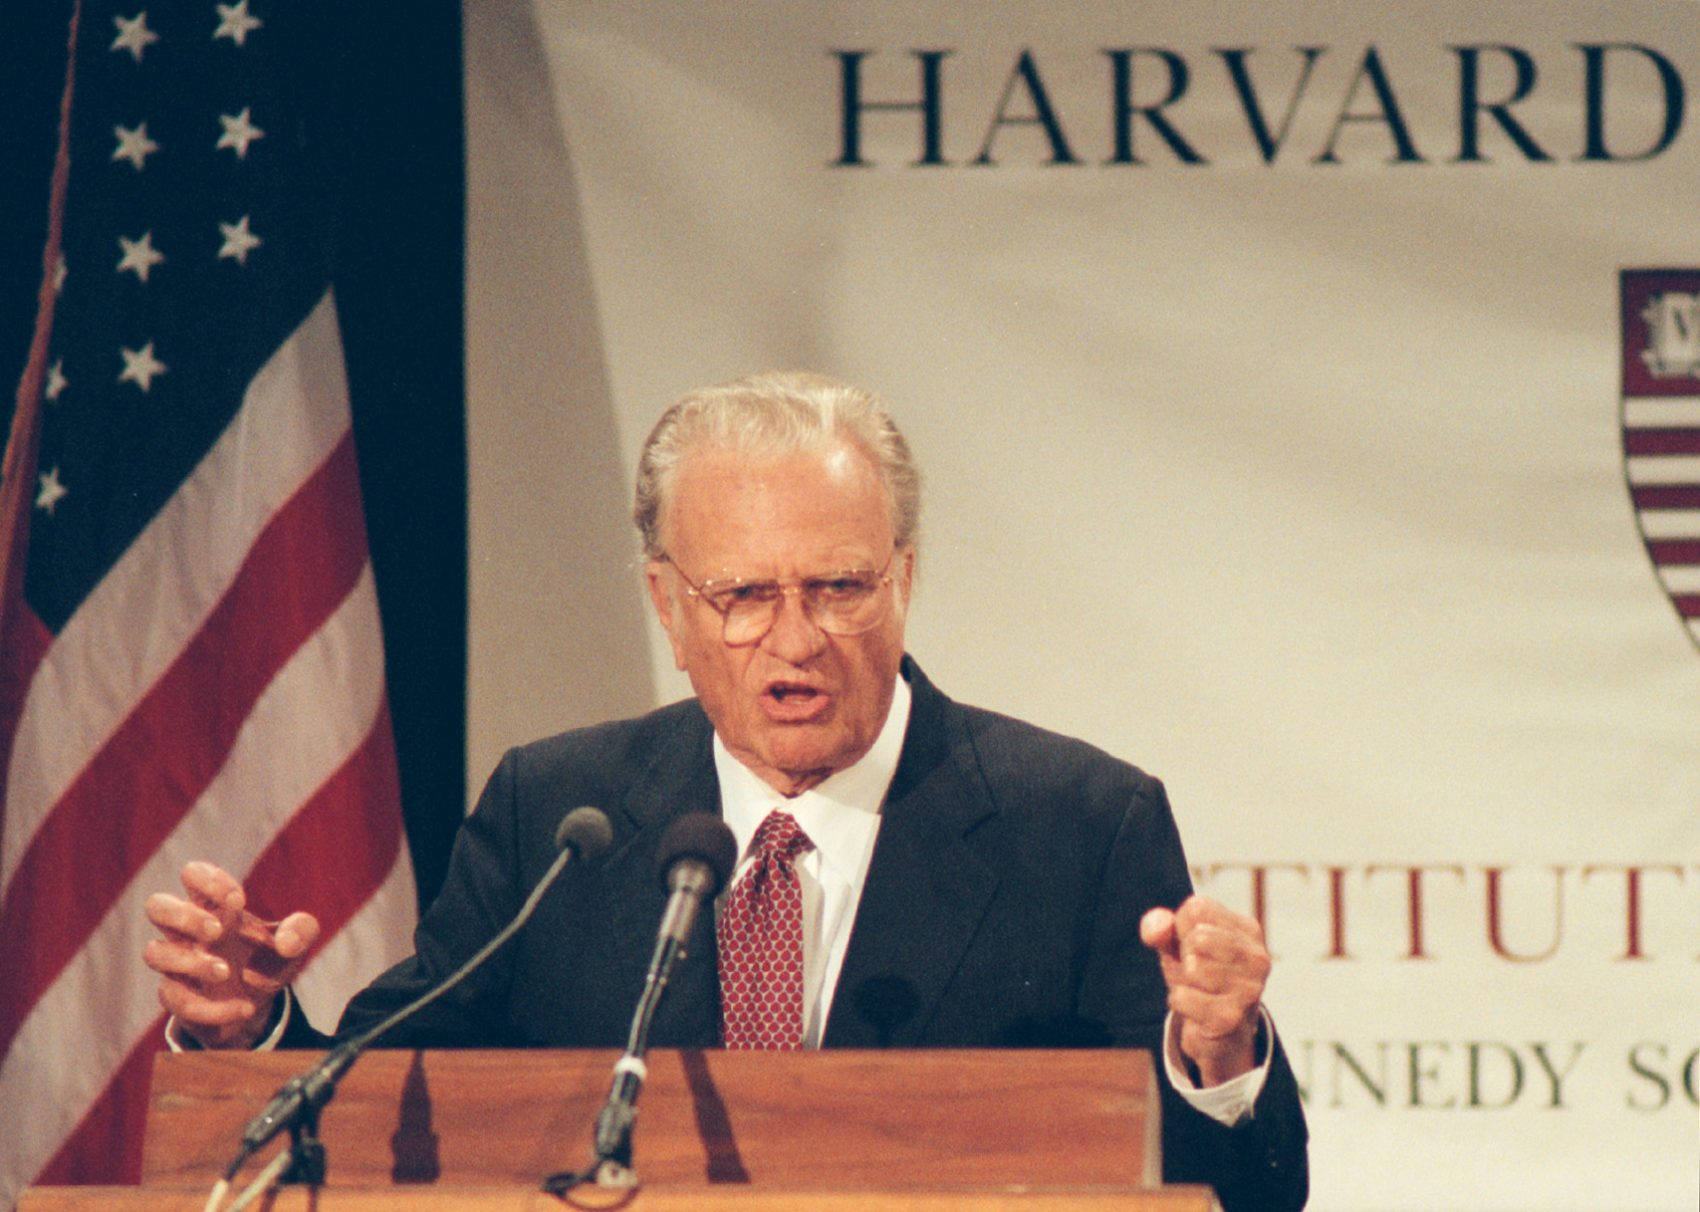 """The Rev. Billy Graham gave a public address titled """"Is God Relevant for the 21st Century"""" at the Kennedy School of Government on Sept. 27, 1999. (Courtesy Harvard University)"""